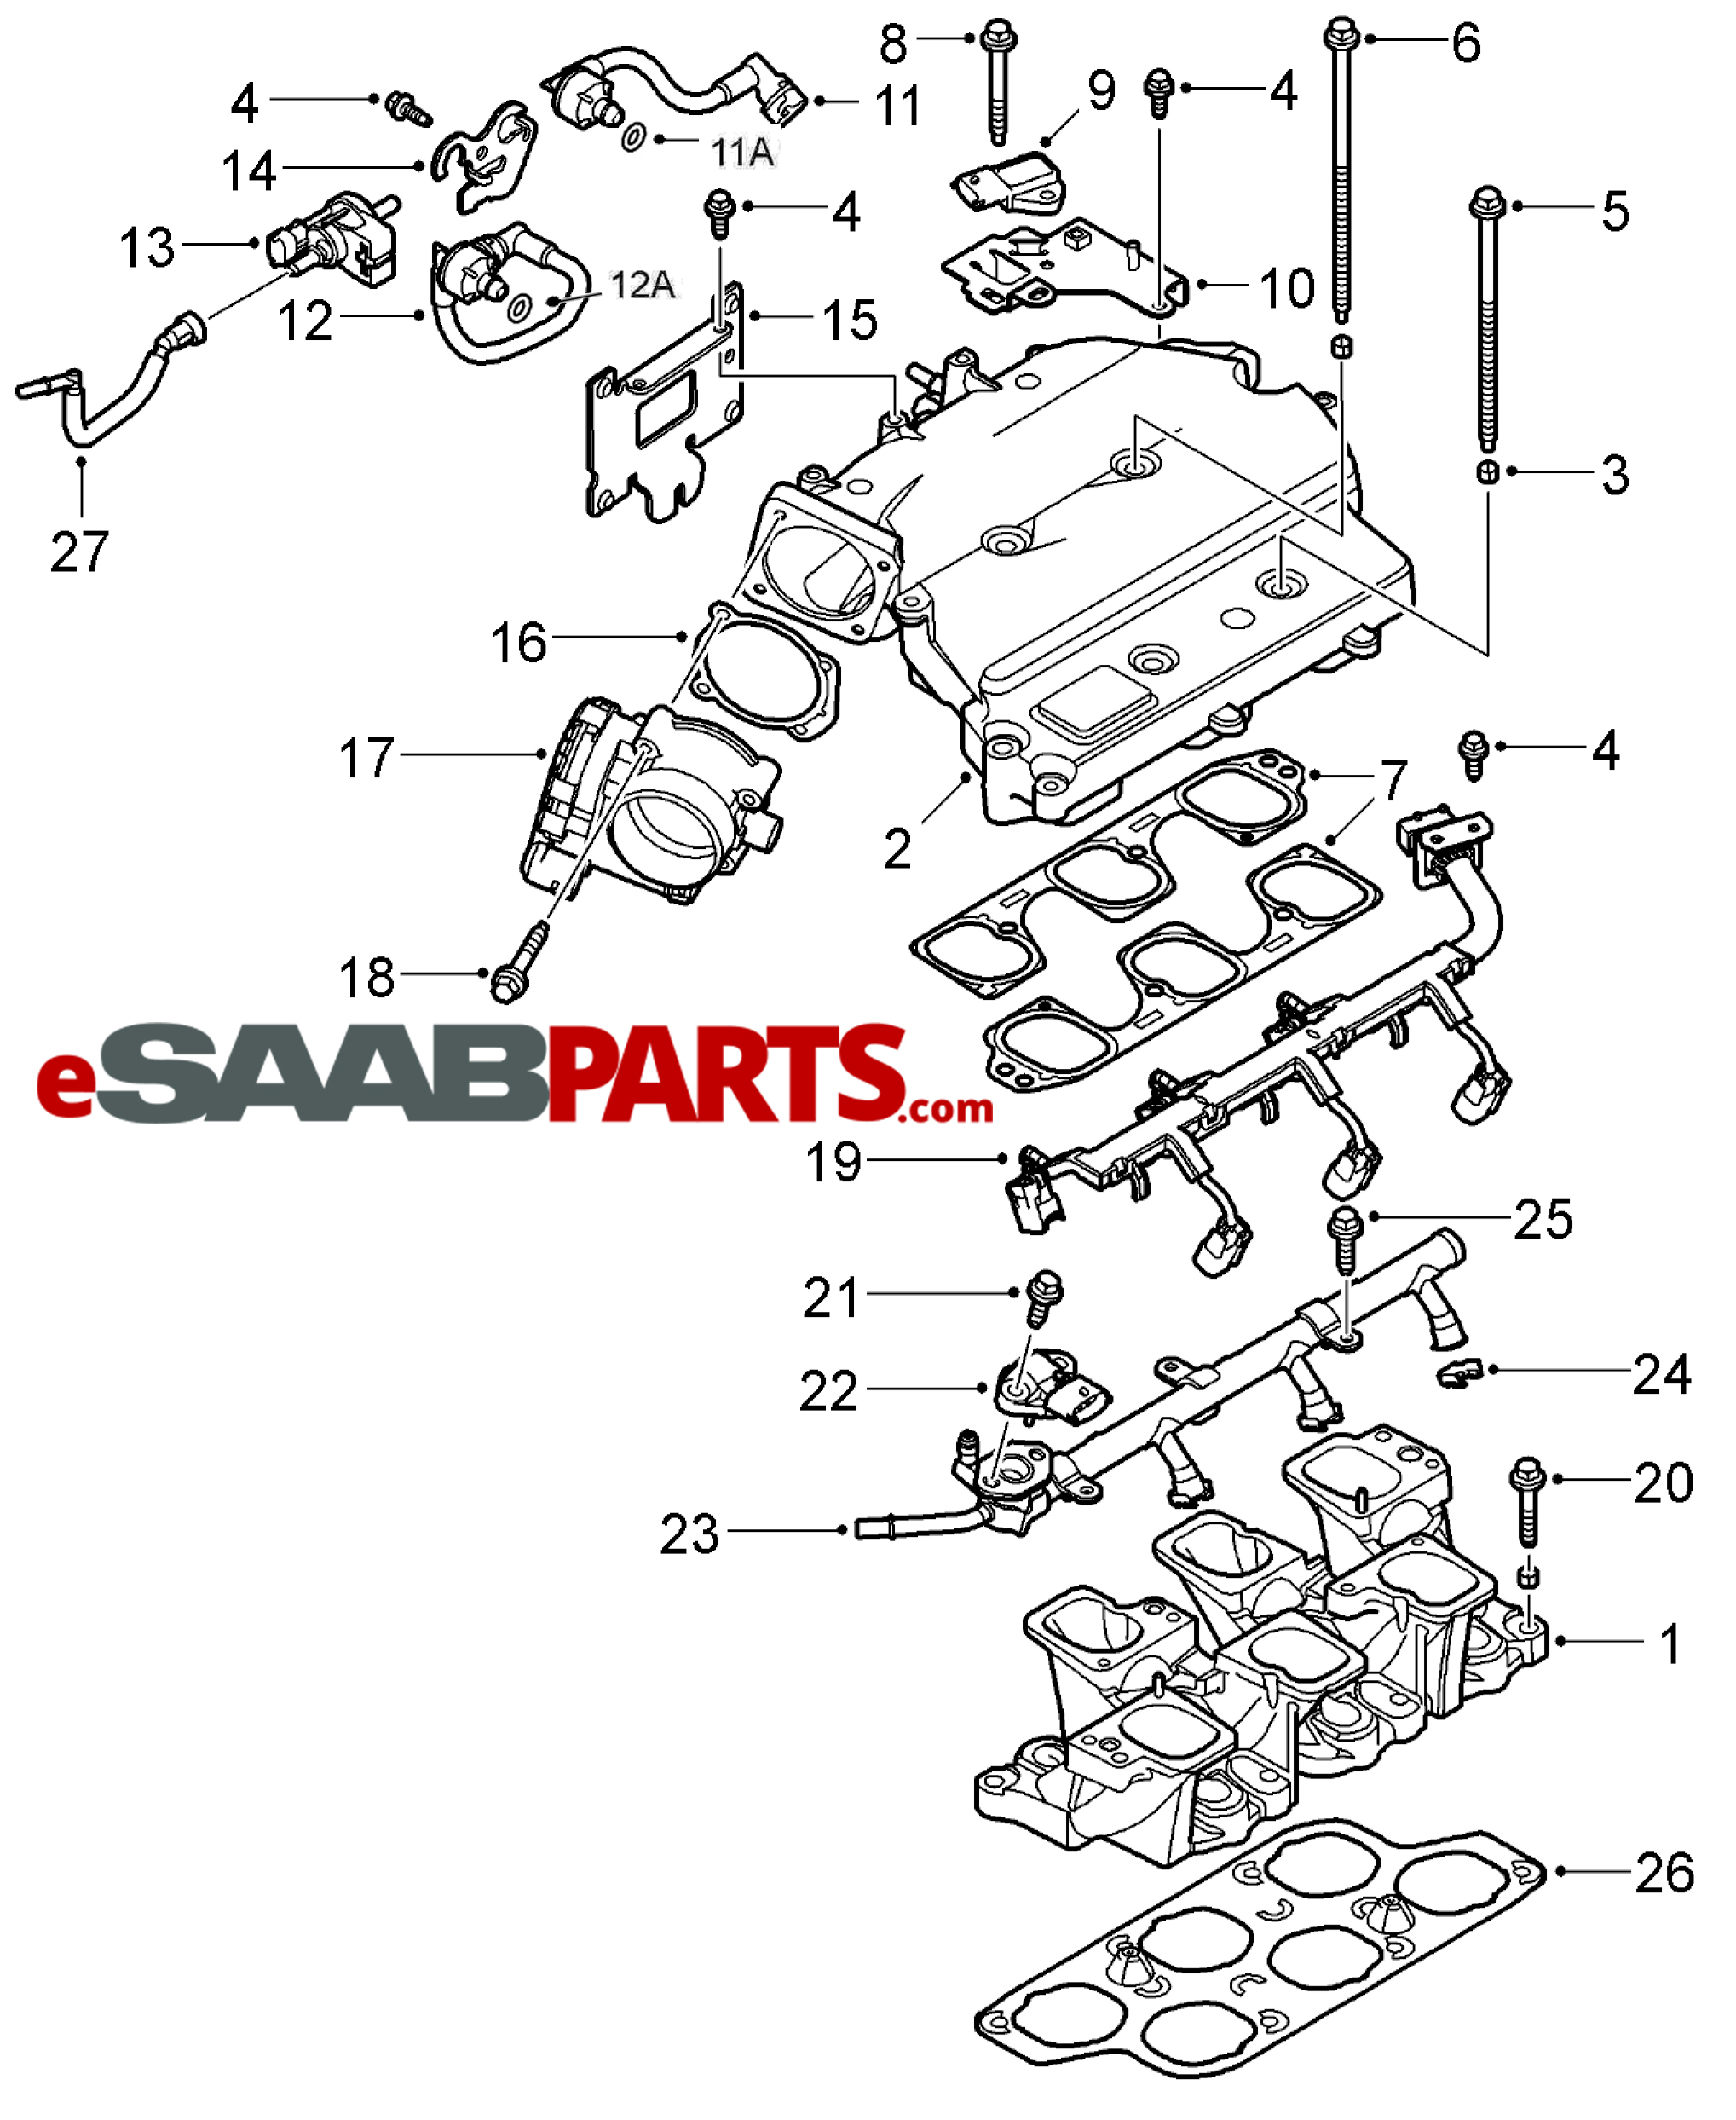 saab 9 3 engine diagram block of sim card clutch and wiring